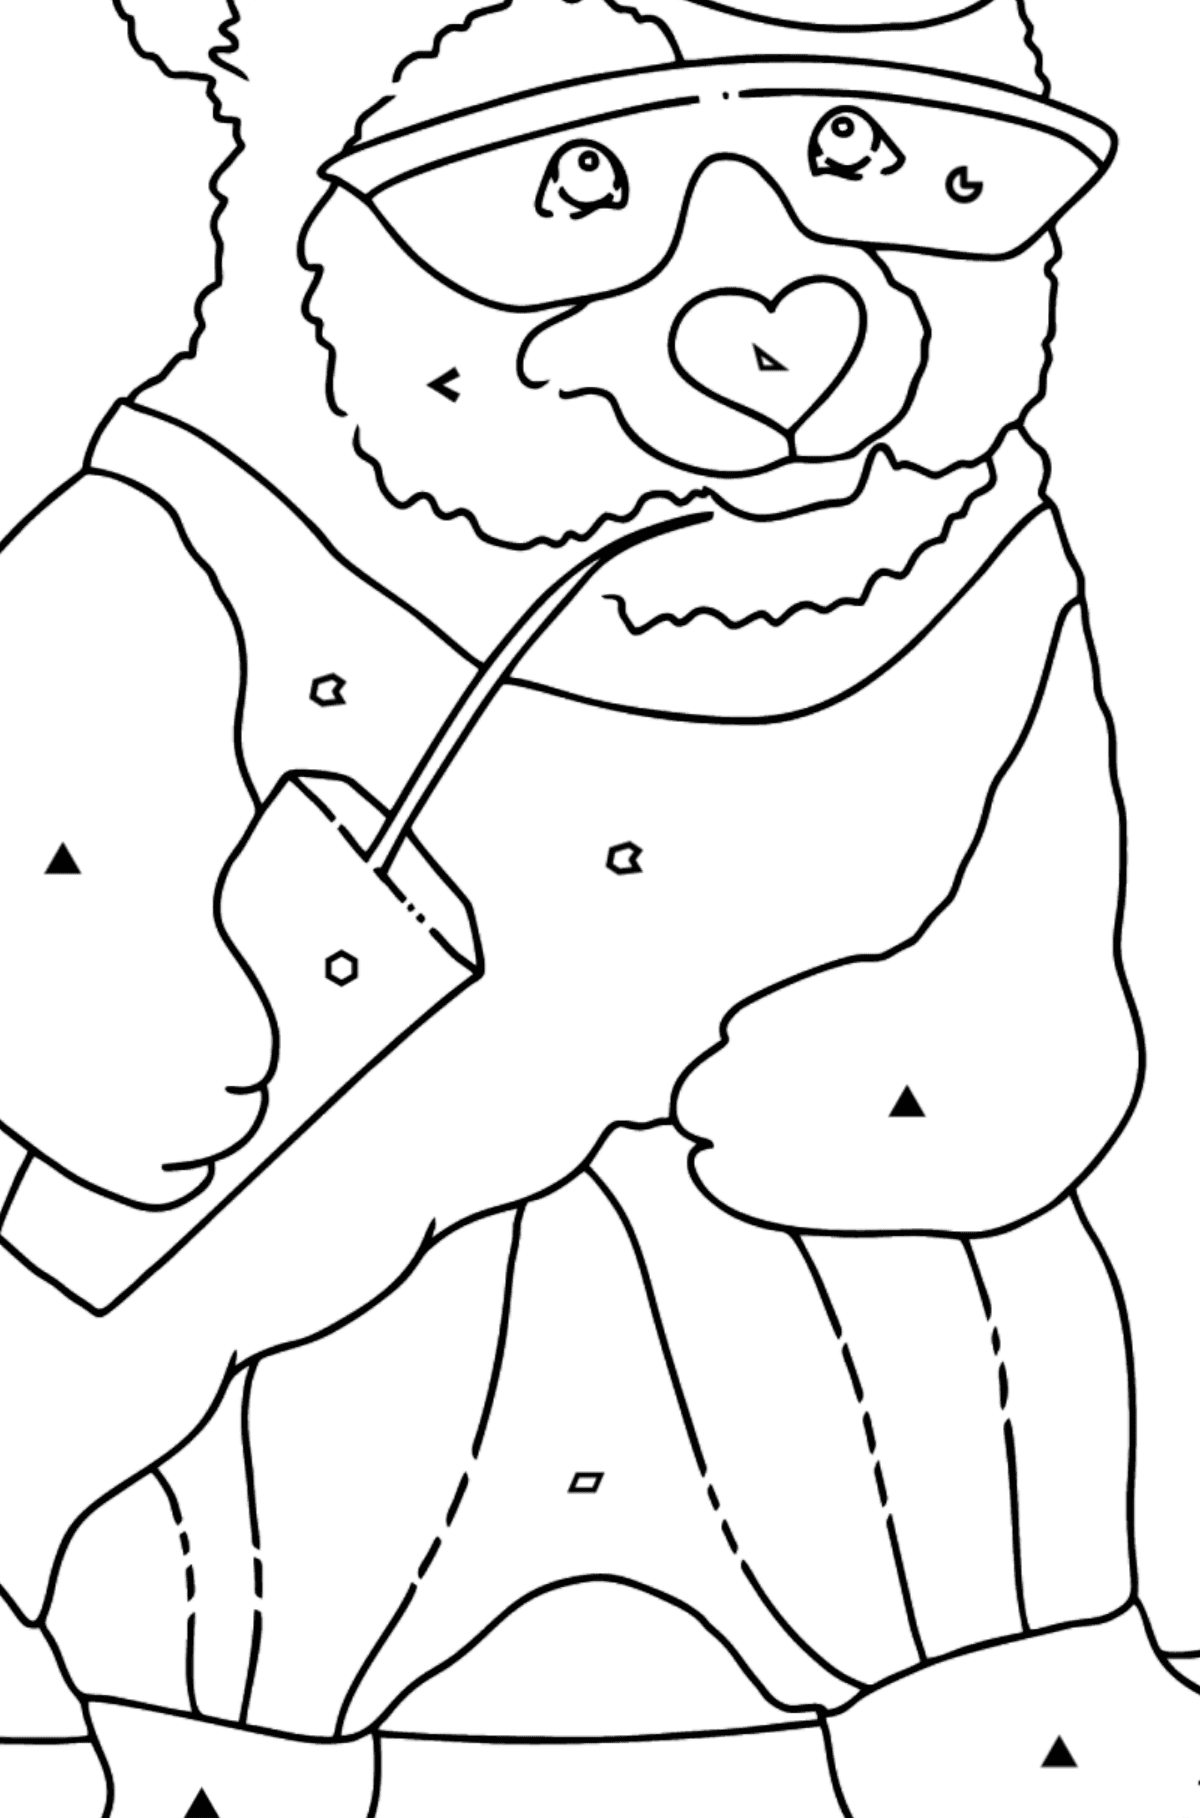 Coloring Page - A Panda on a Skateboard - Coloring by Symbols and Geometric Shapes for Kids